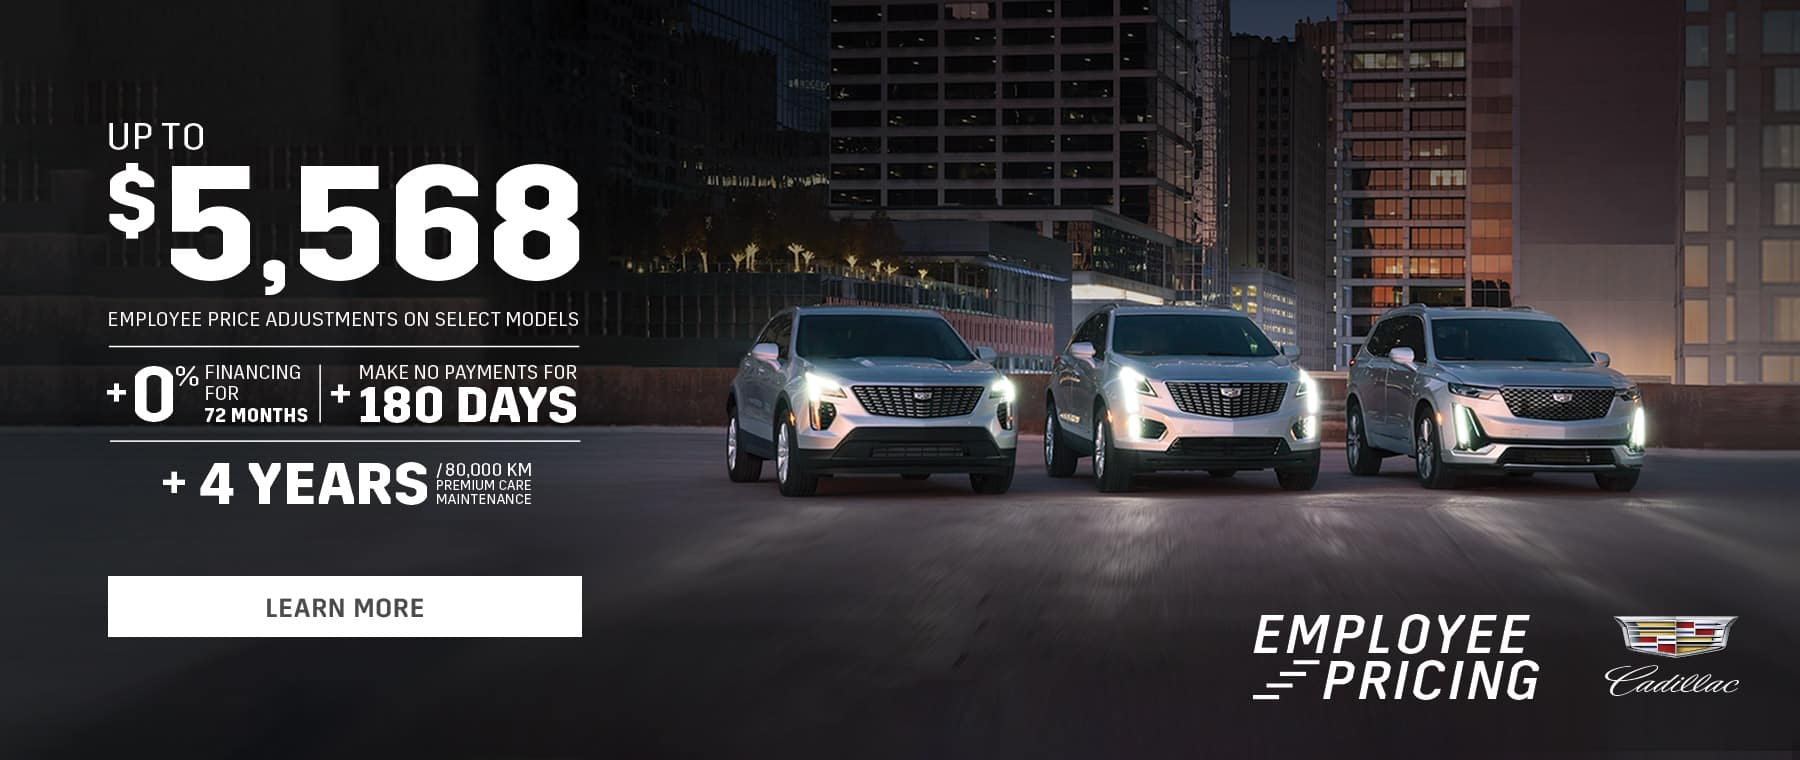 Employee Pricing Cadillac